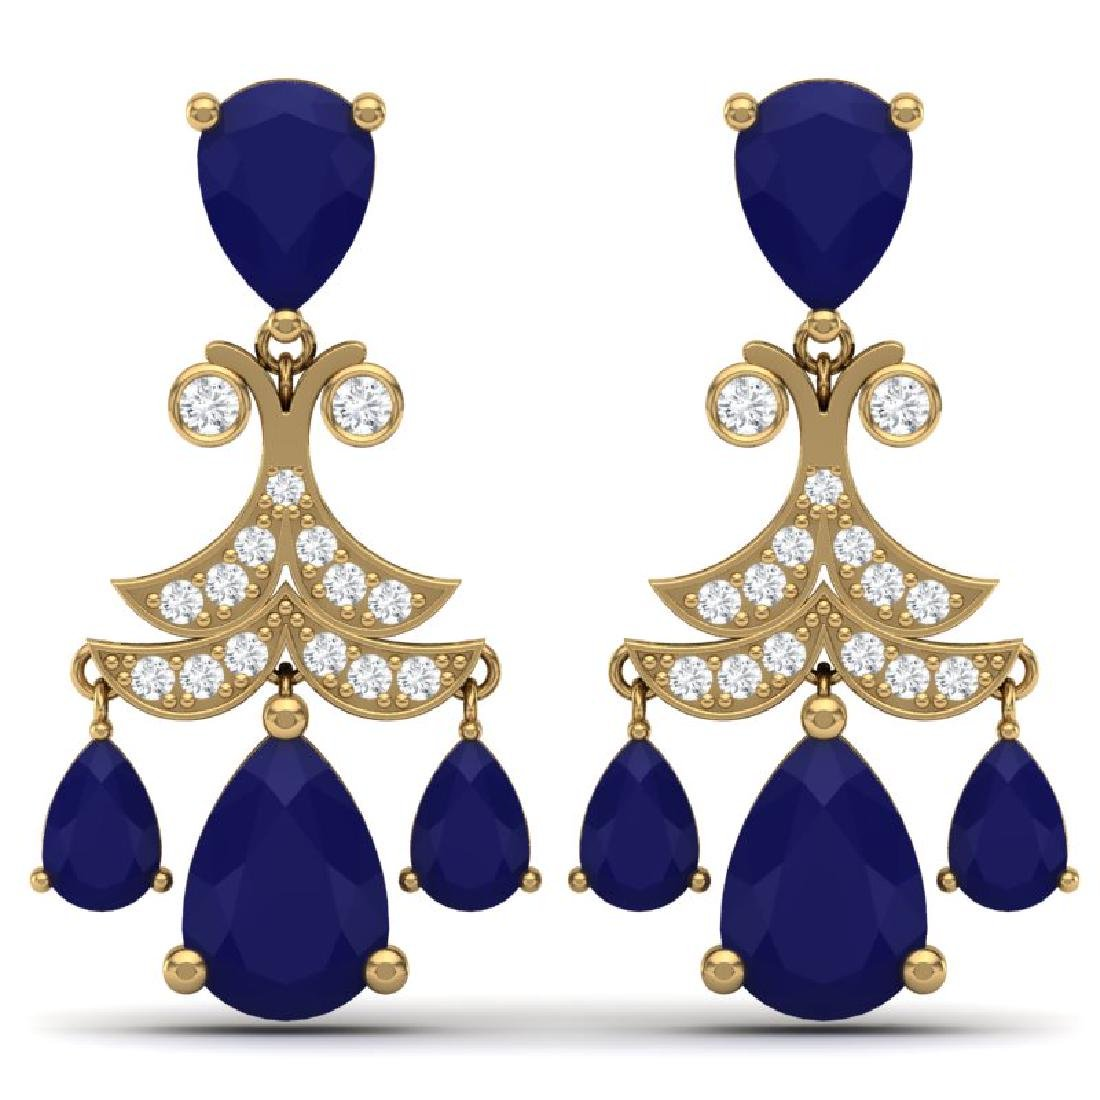 11.97 CTW Royalty Sapphire & VS Diamond Earrings 18K